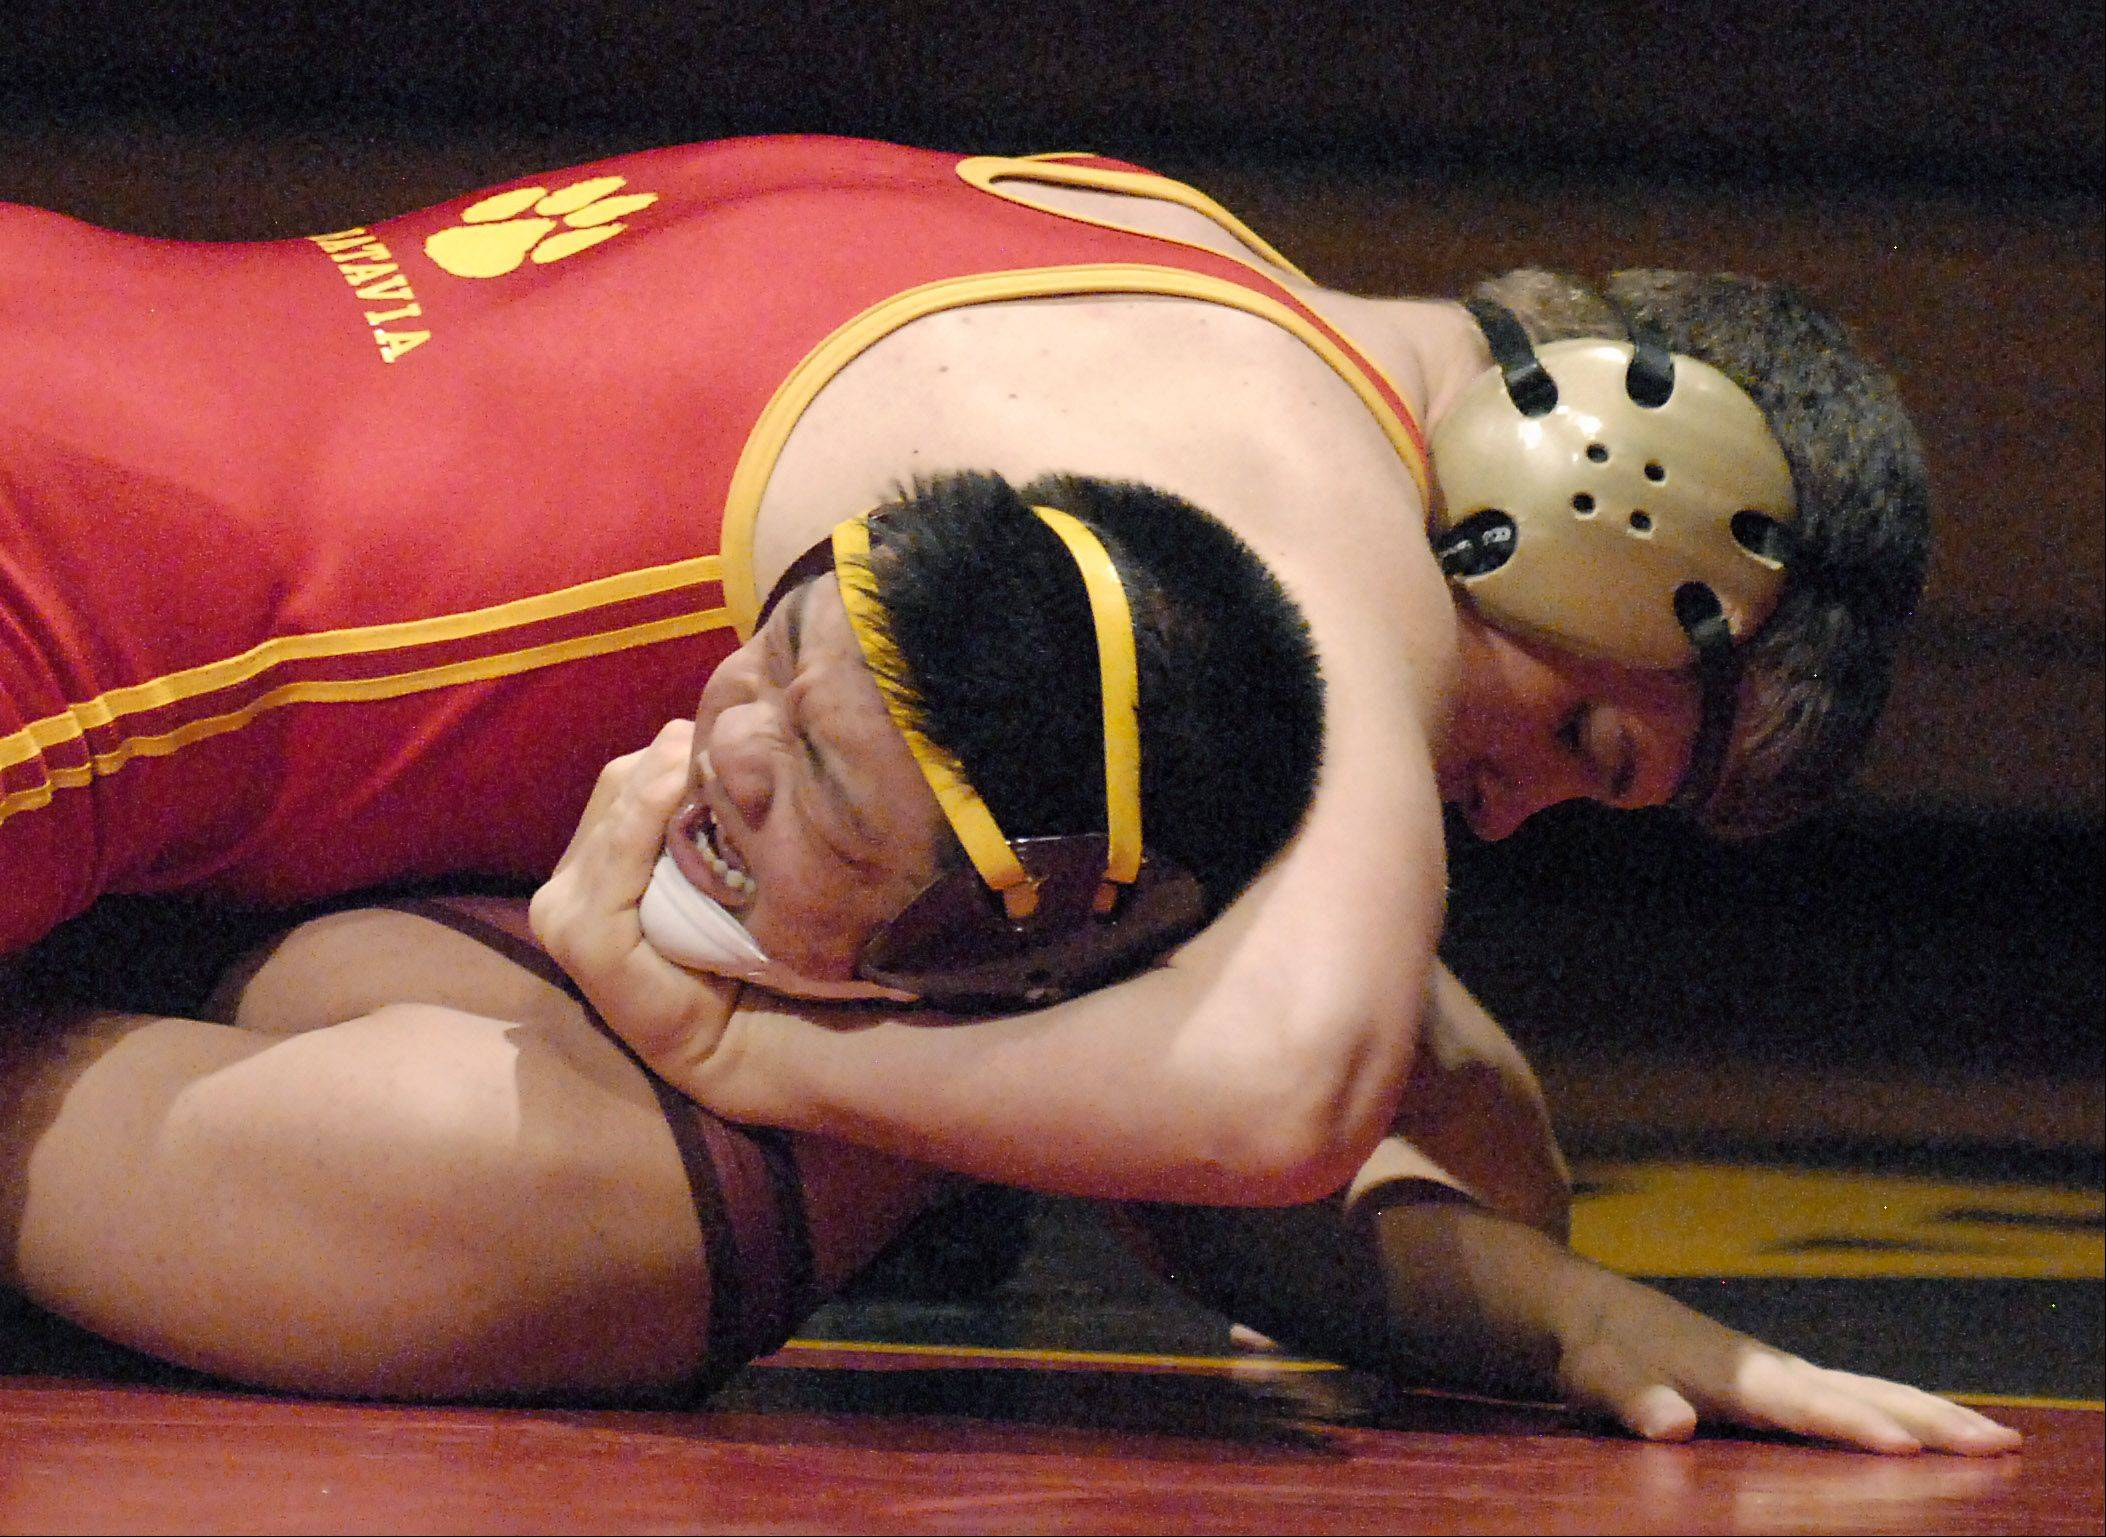 Batavia's Nick Whittman takes the 170-pound over Schaumburg's Woo Lee on Saturday.